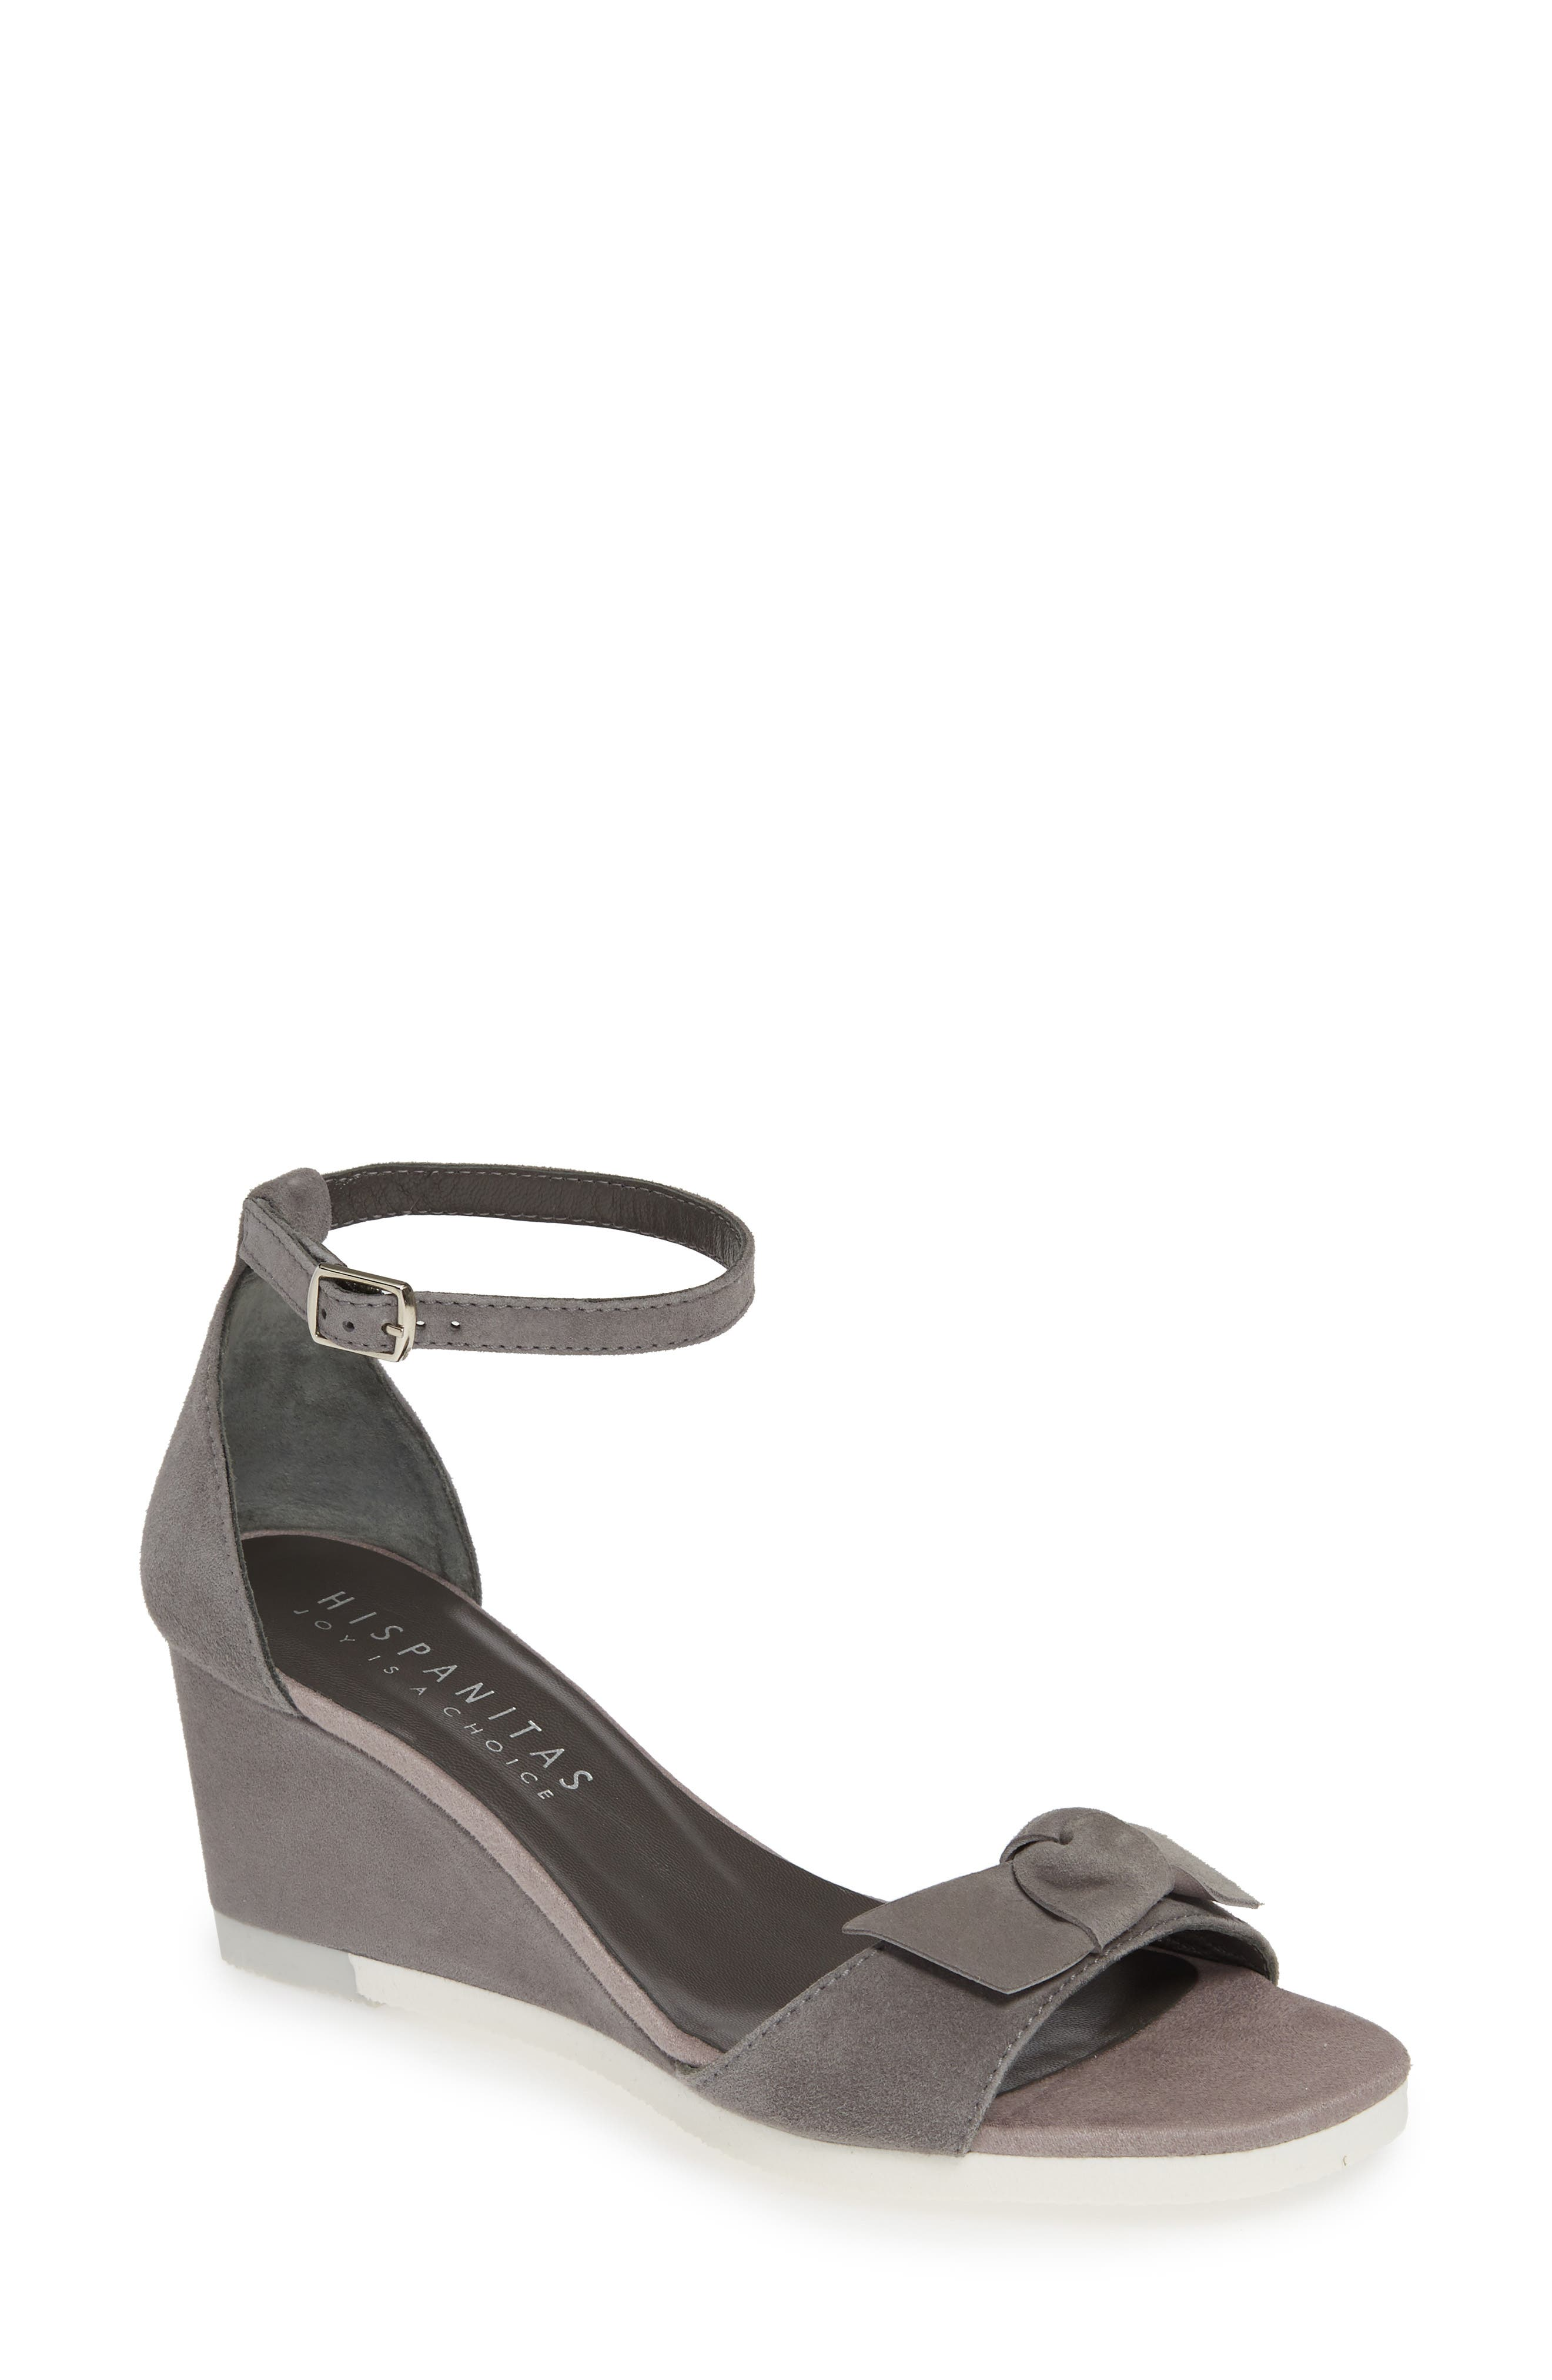 Carsten Wedge Sandal,                             Main thumbnail 1, color,                             ANTE CARBON SUEDE